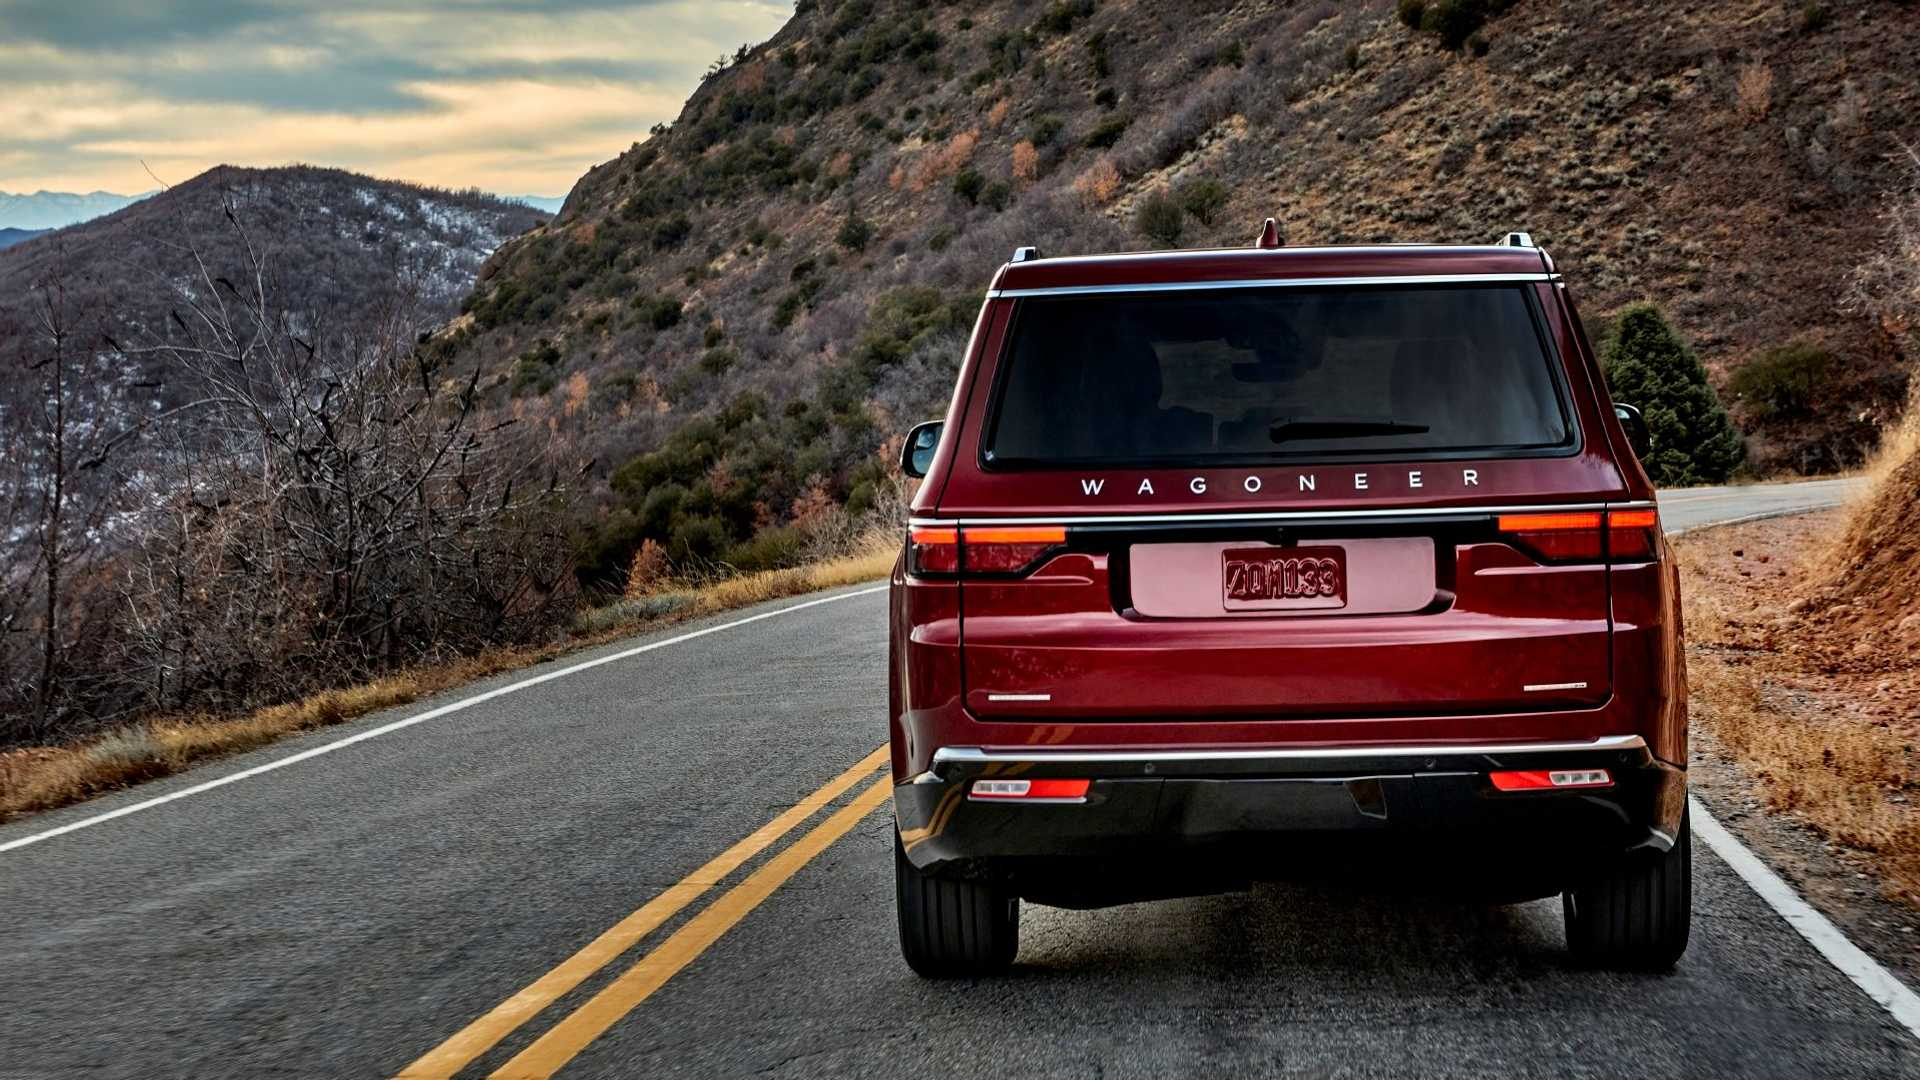 2022-jeep-wagoneer-exterior-rear-view-1